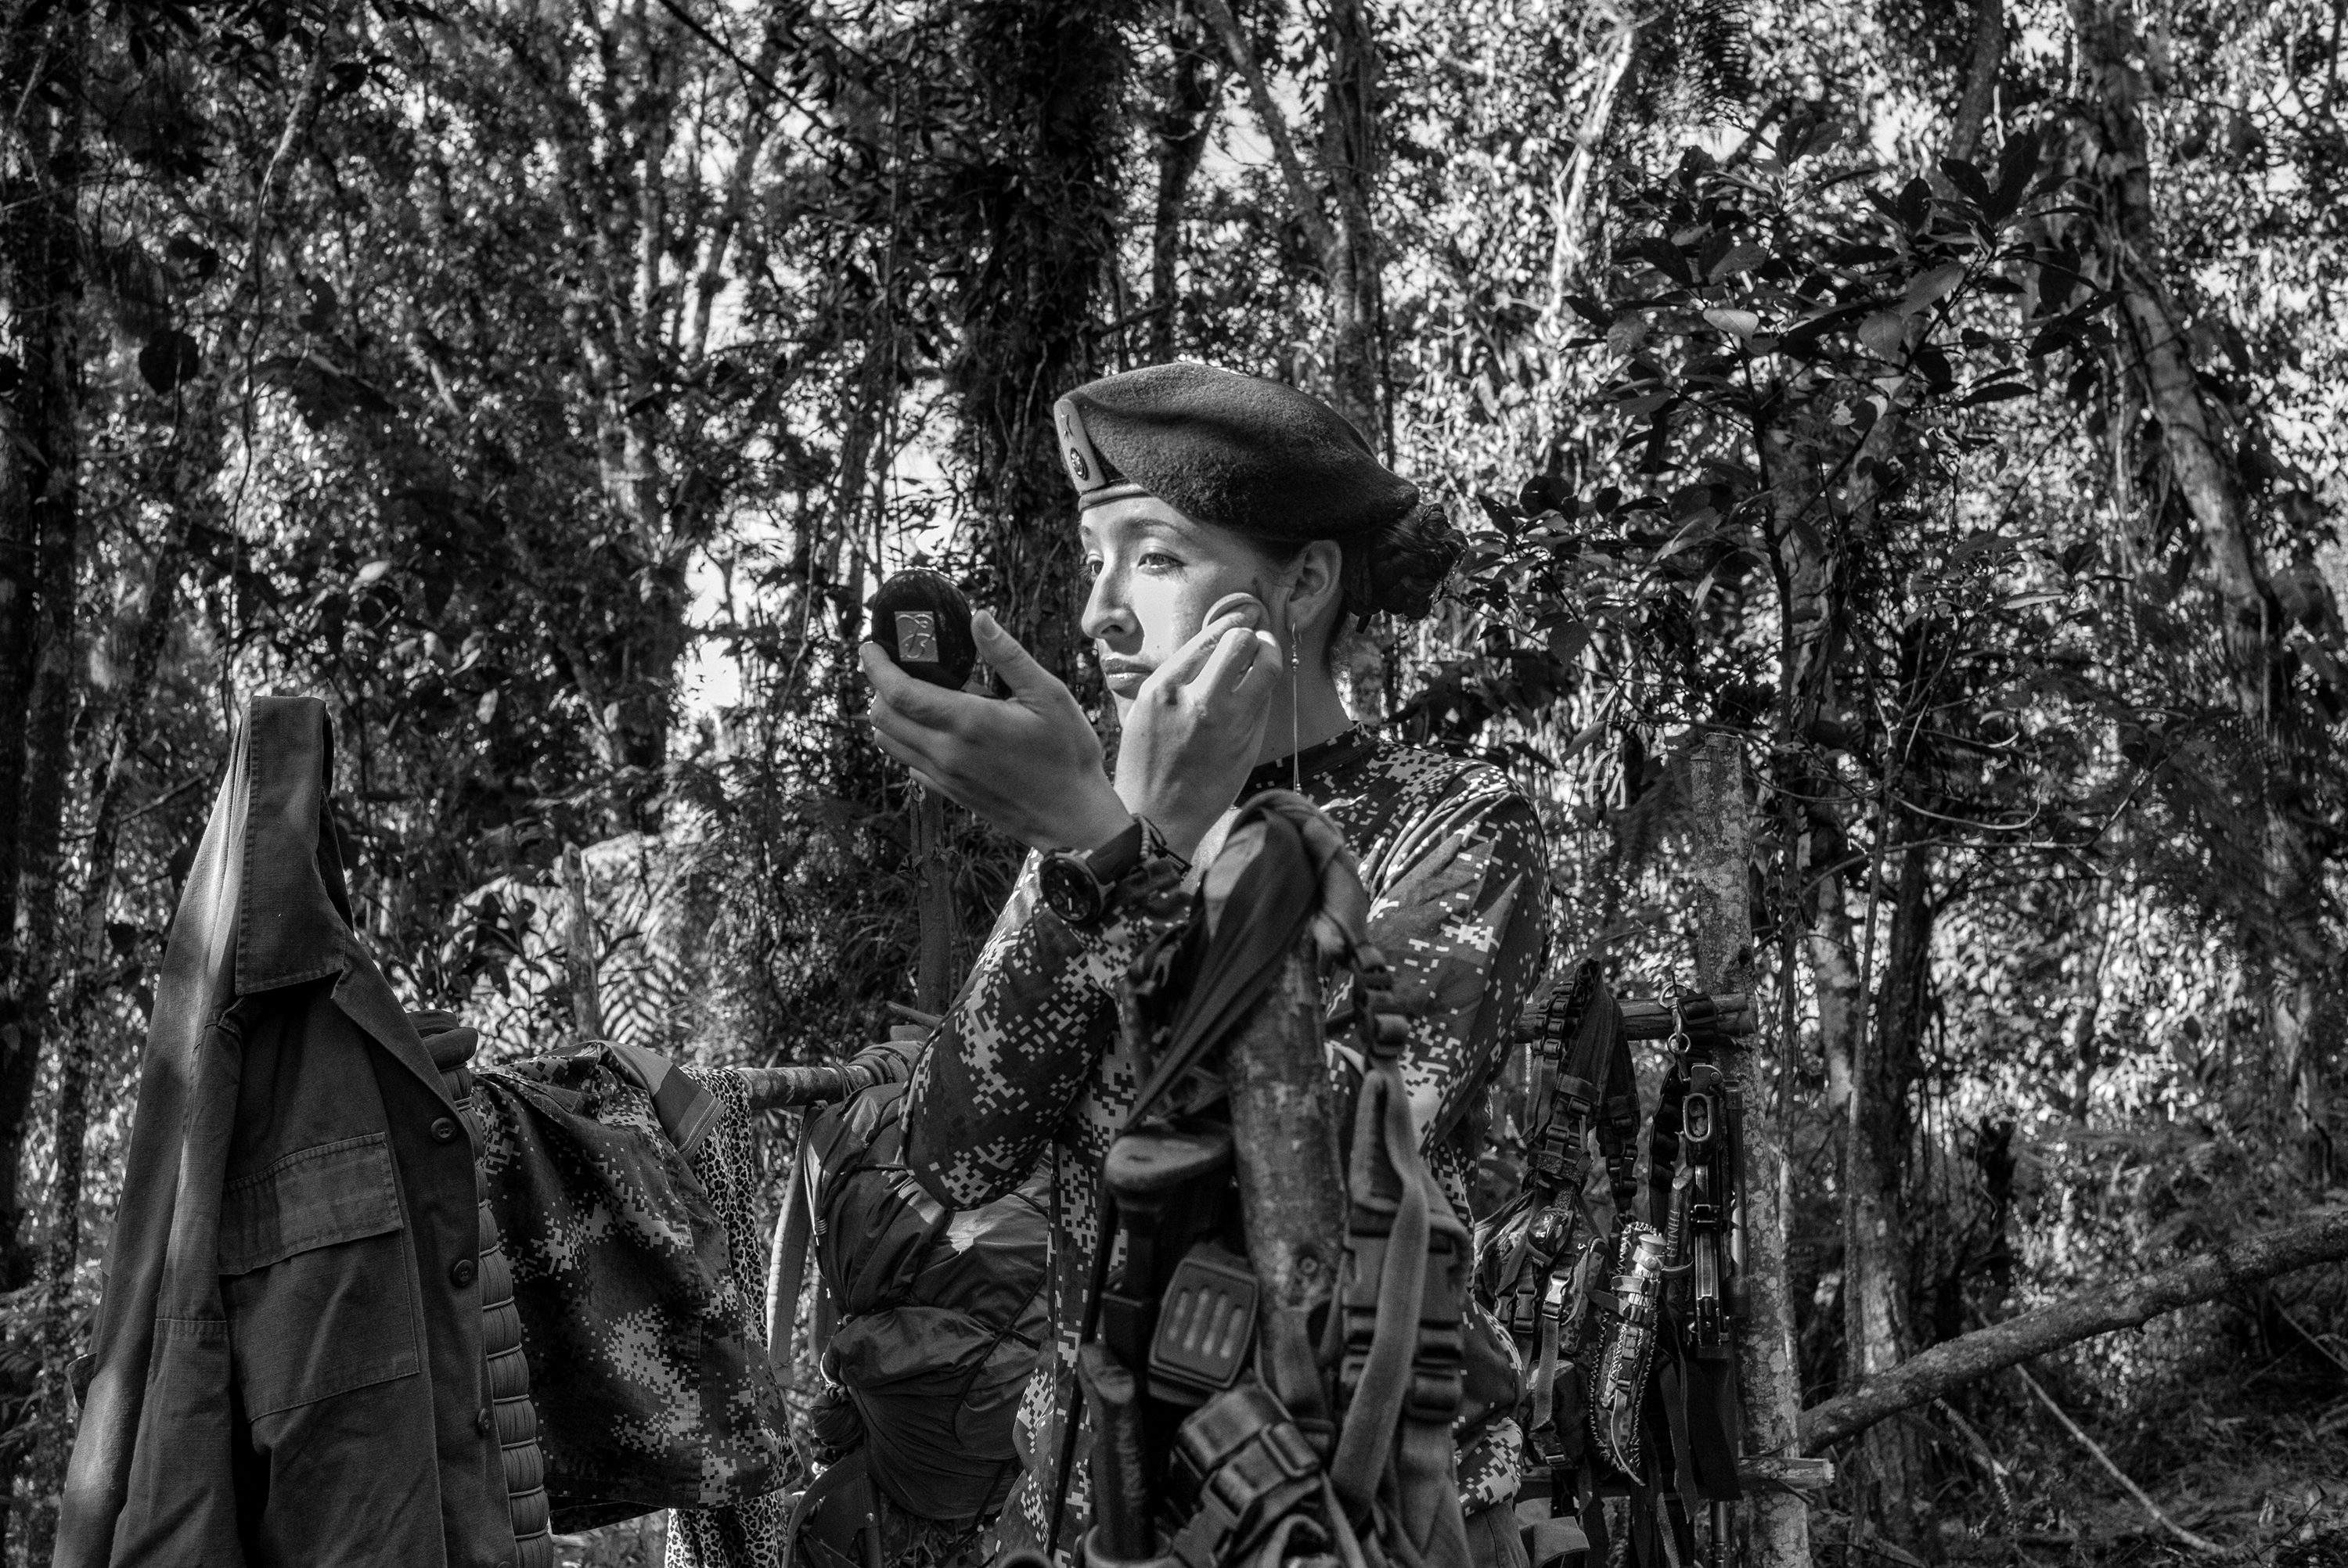 Tania, A FARC guerrilla member,  puts on makeup at a camp, Cauca, Colombia. On Oct. 2, 2016, Colombians will vote in a referendum to end Colombia's  52-year old conflict between FARC, the military and right-wing paramilitaries, July 2016.